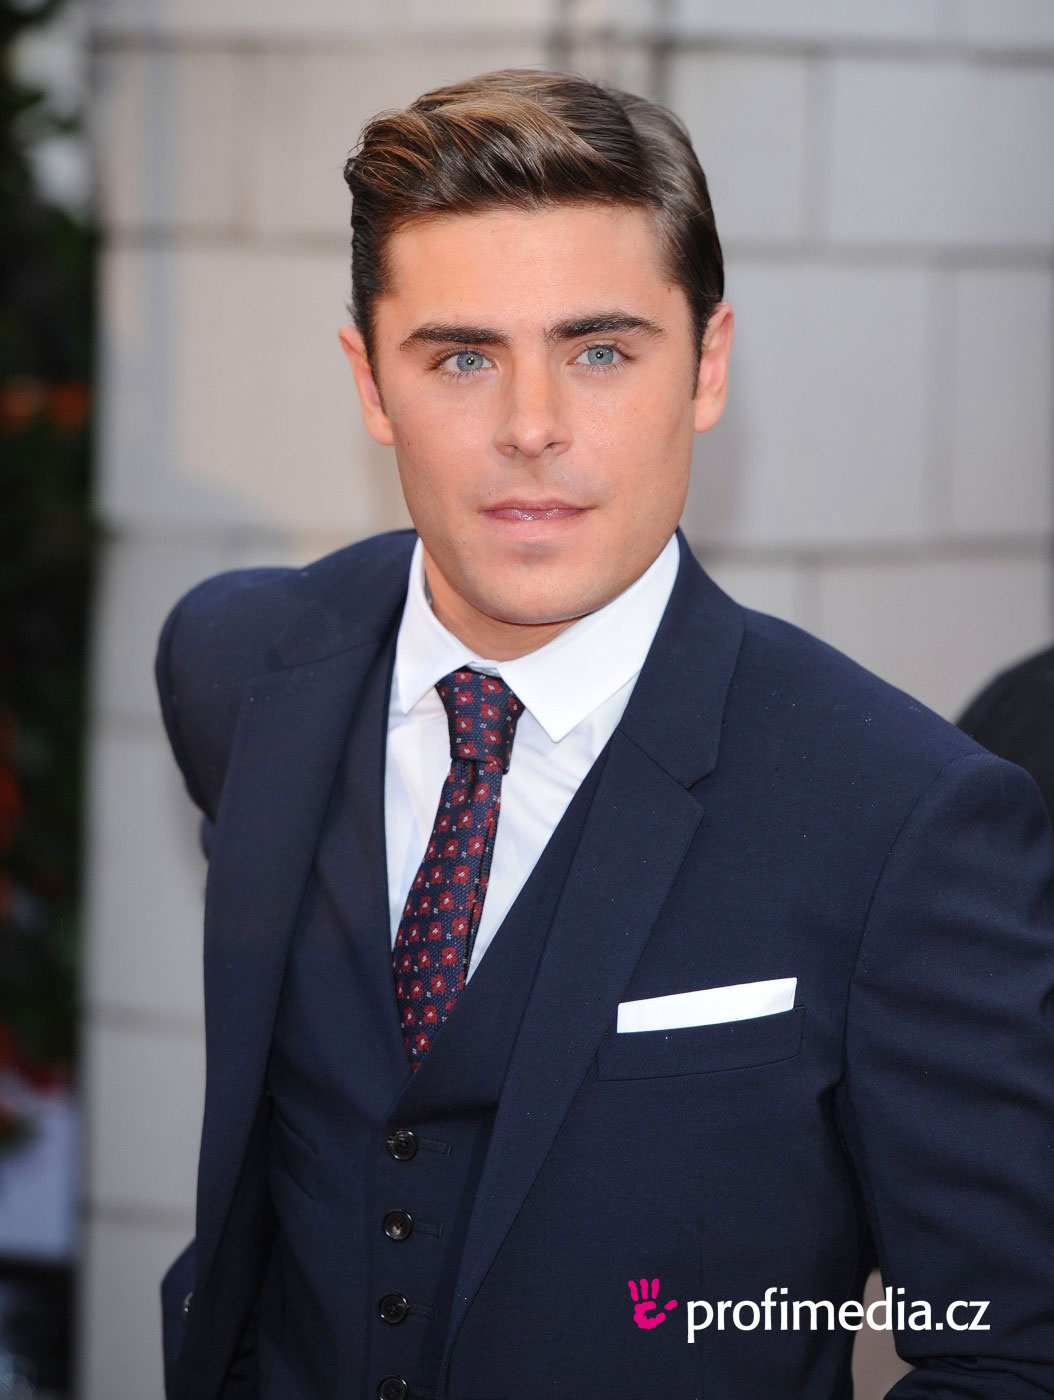 zac efron hairstyle easyhairstyler. Black Bedroom Furniture Sets. Home Design Ideas